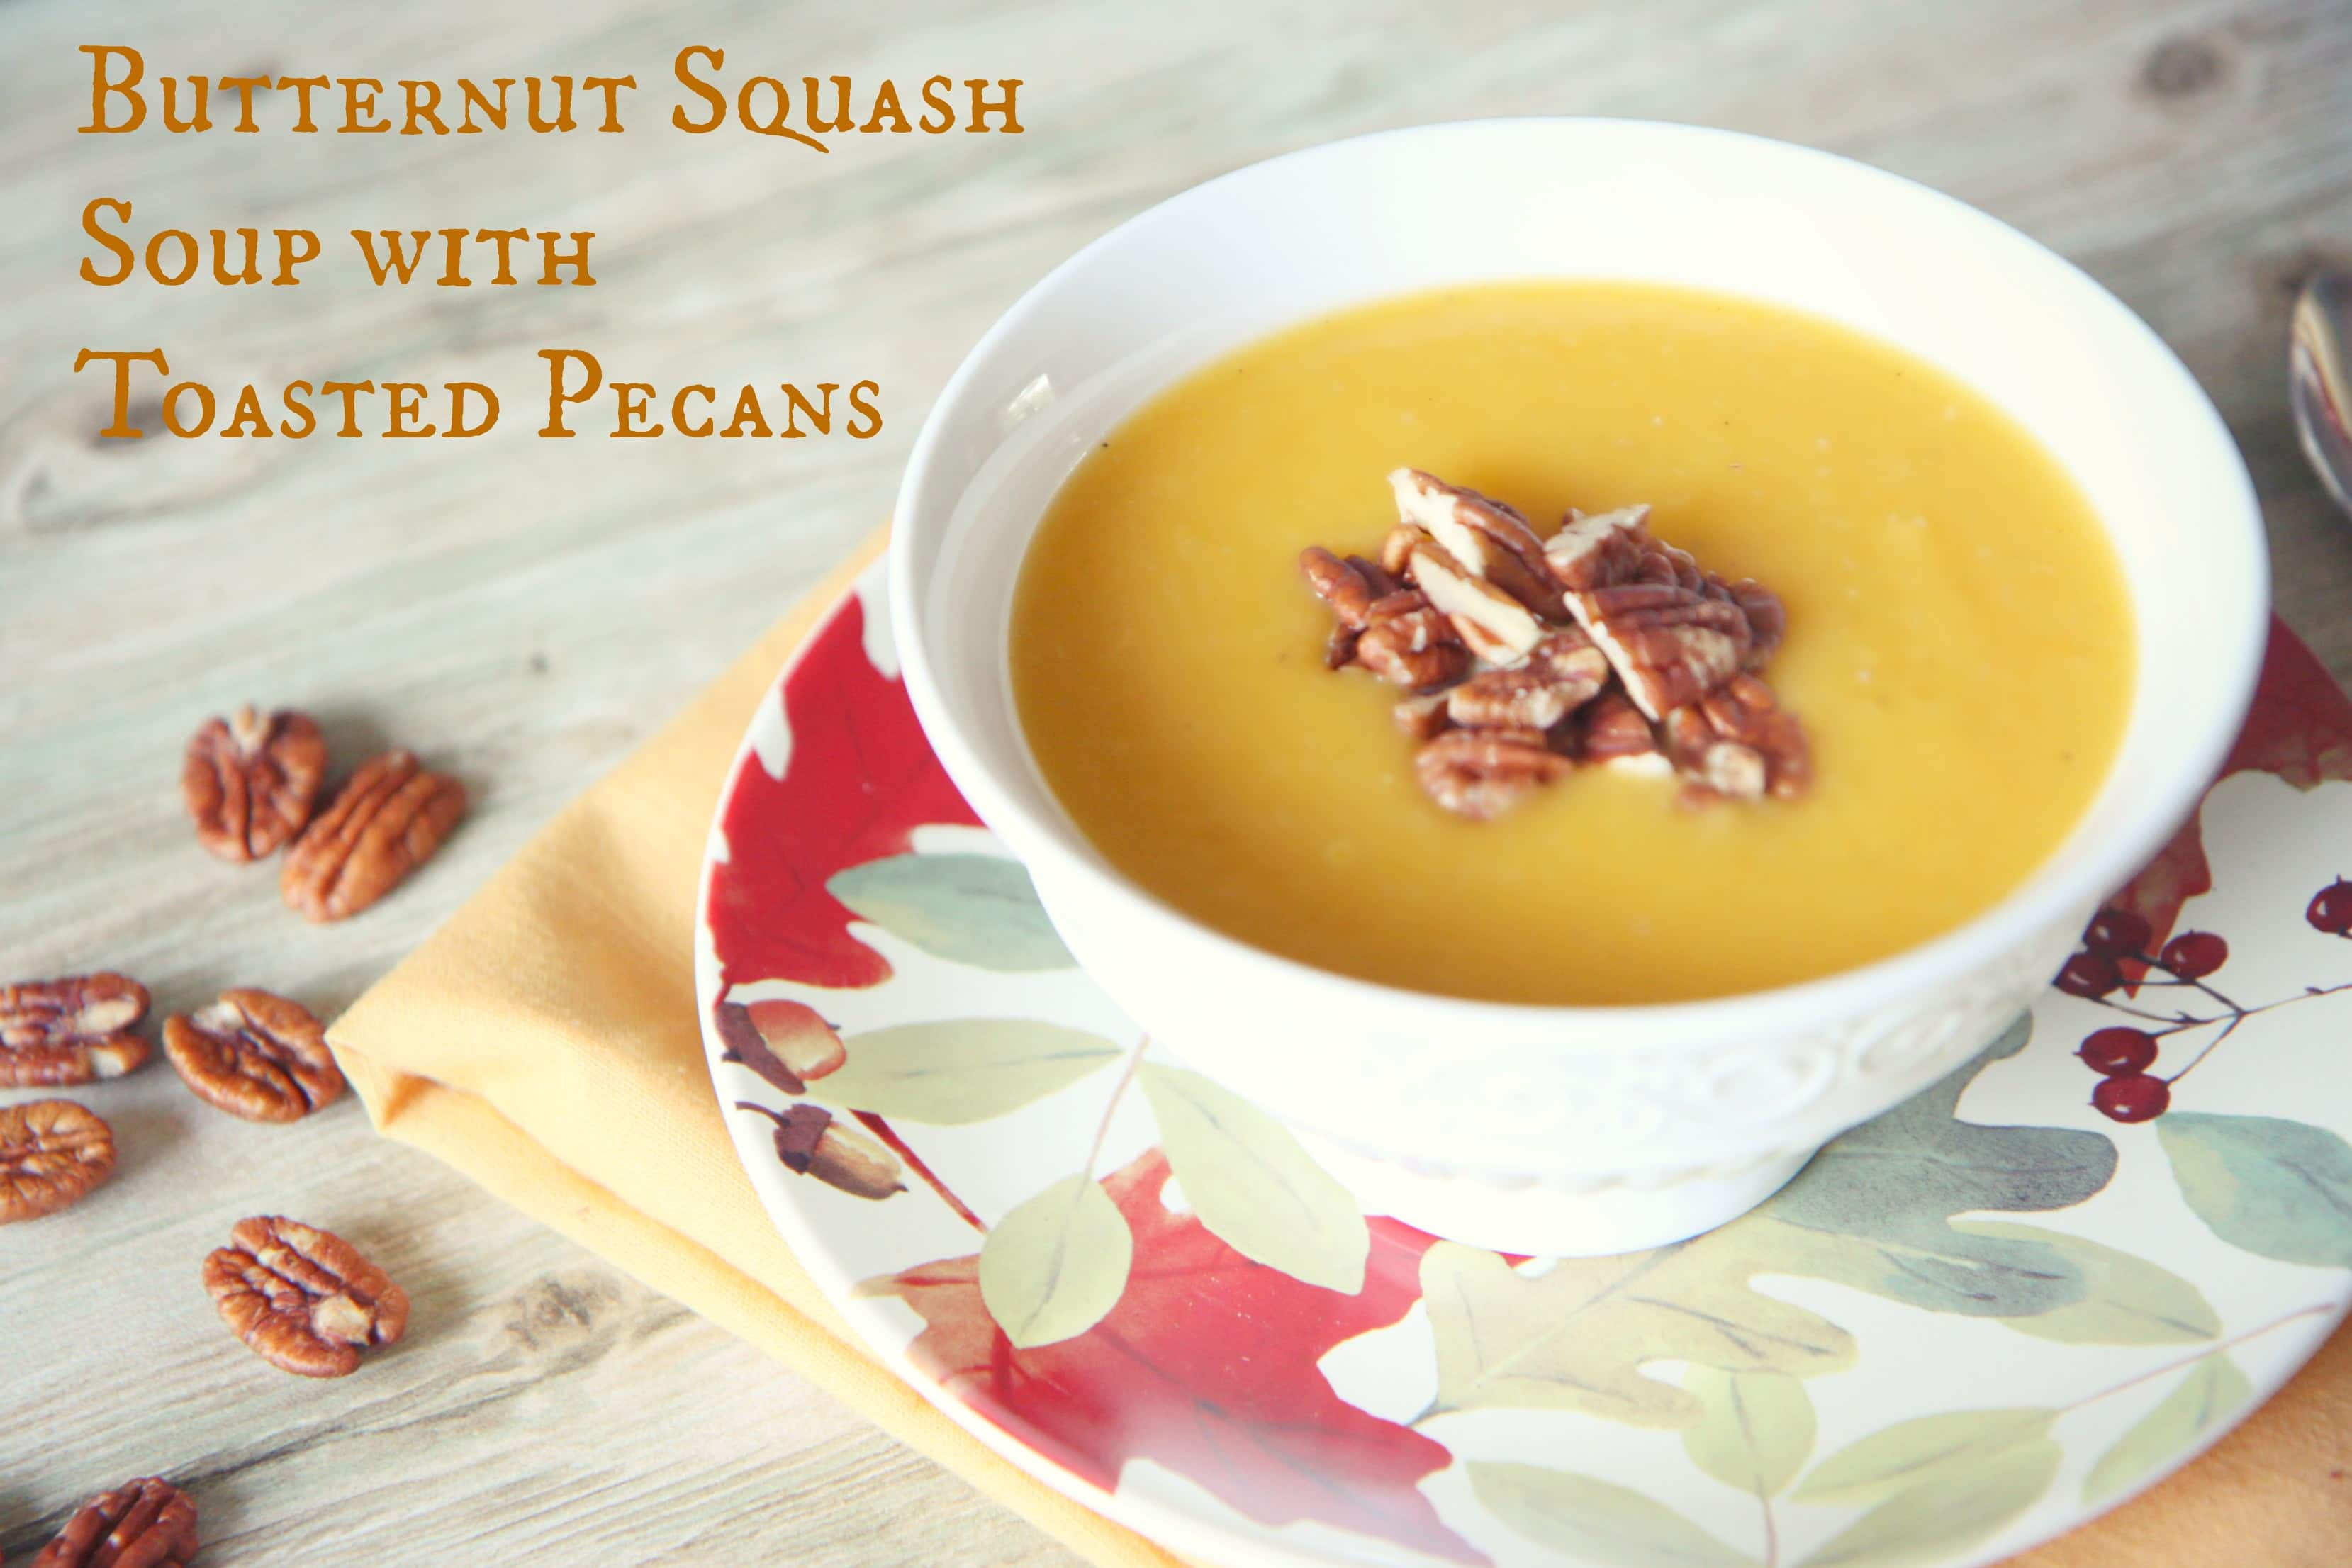 Butternut Squash Soup With Toasted Pecans